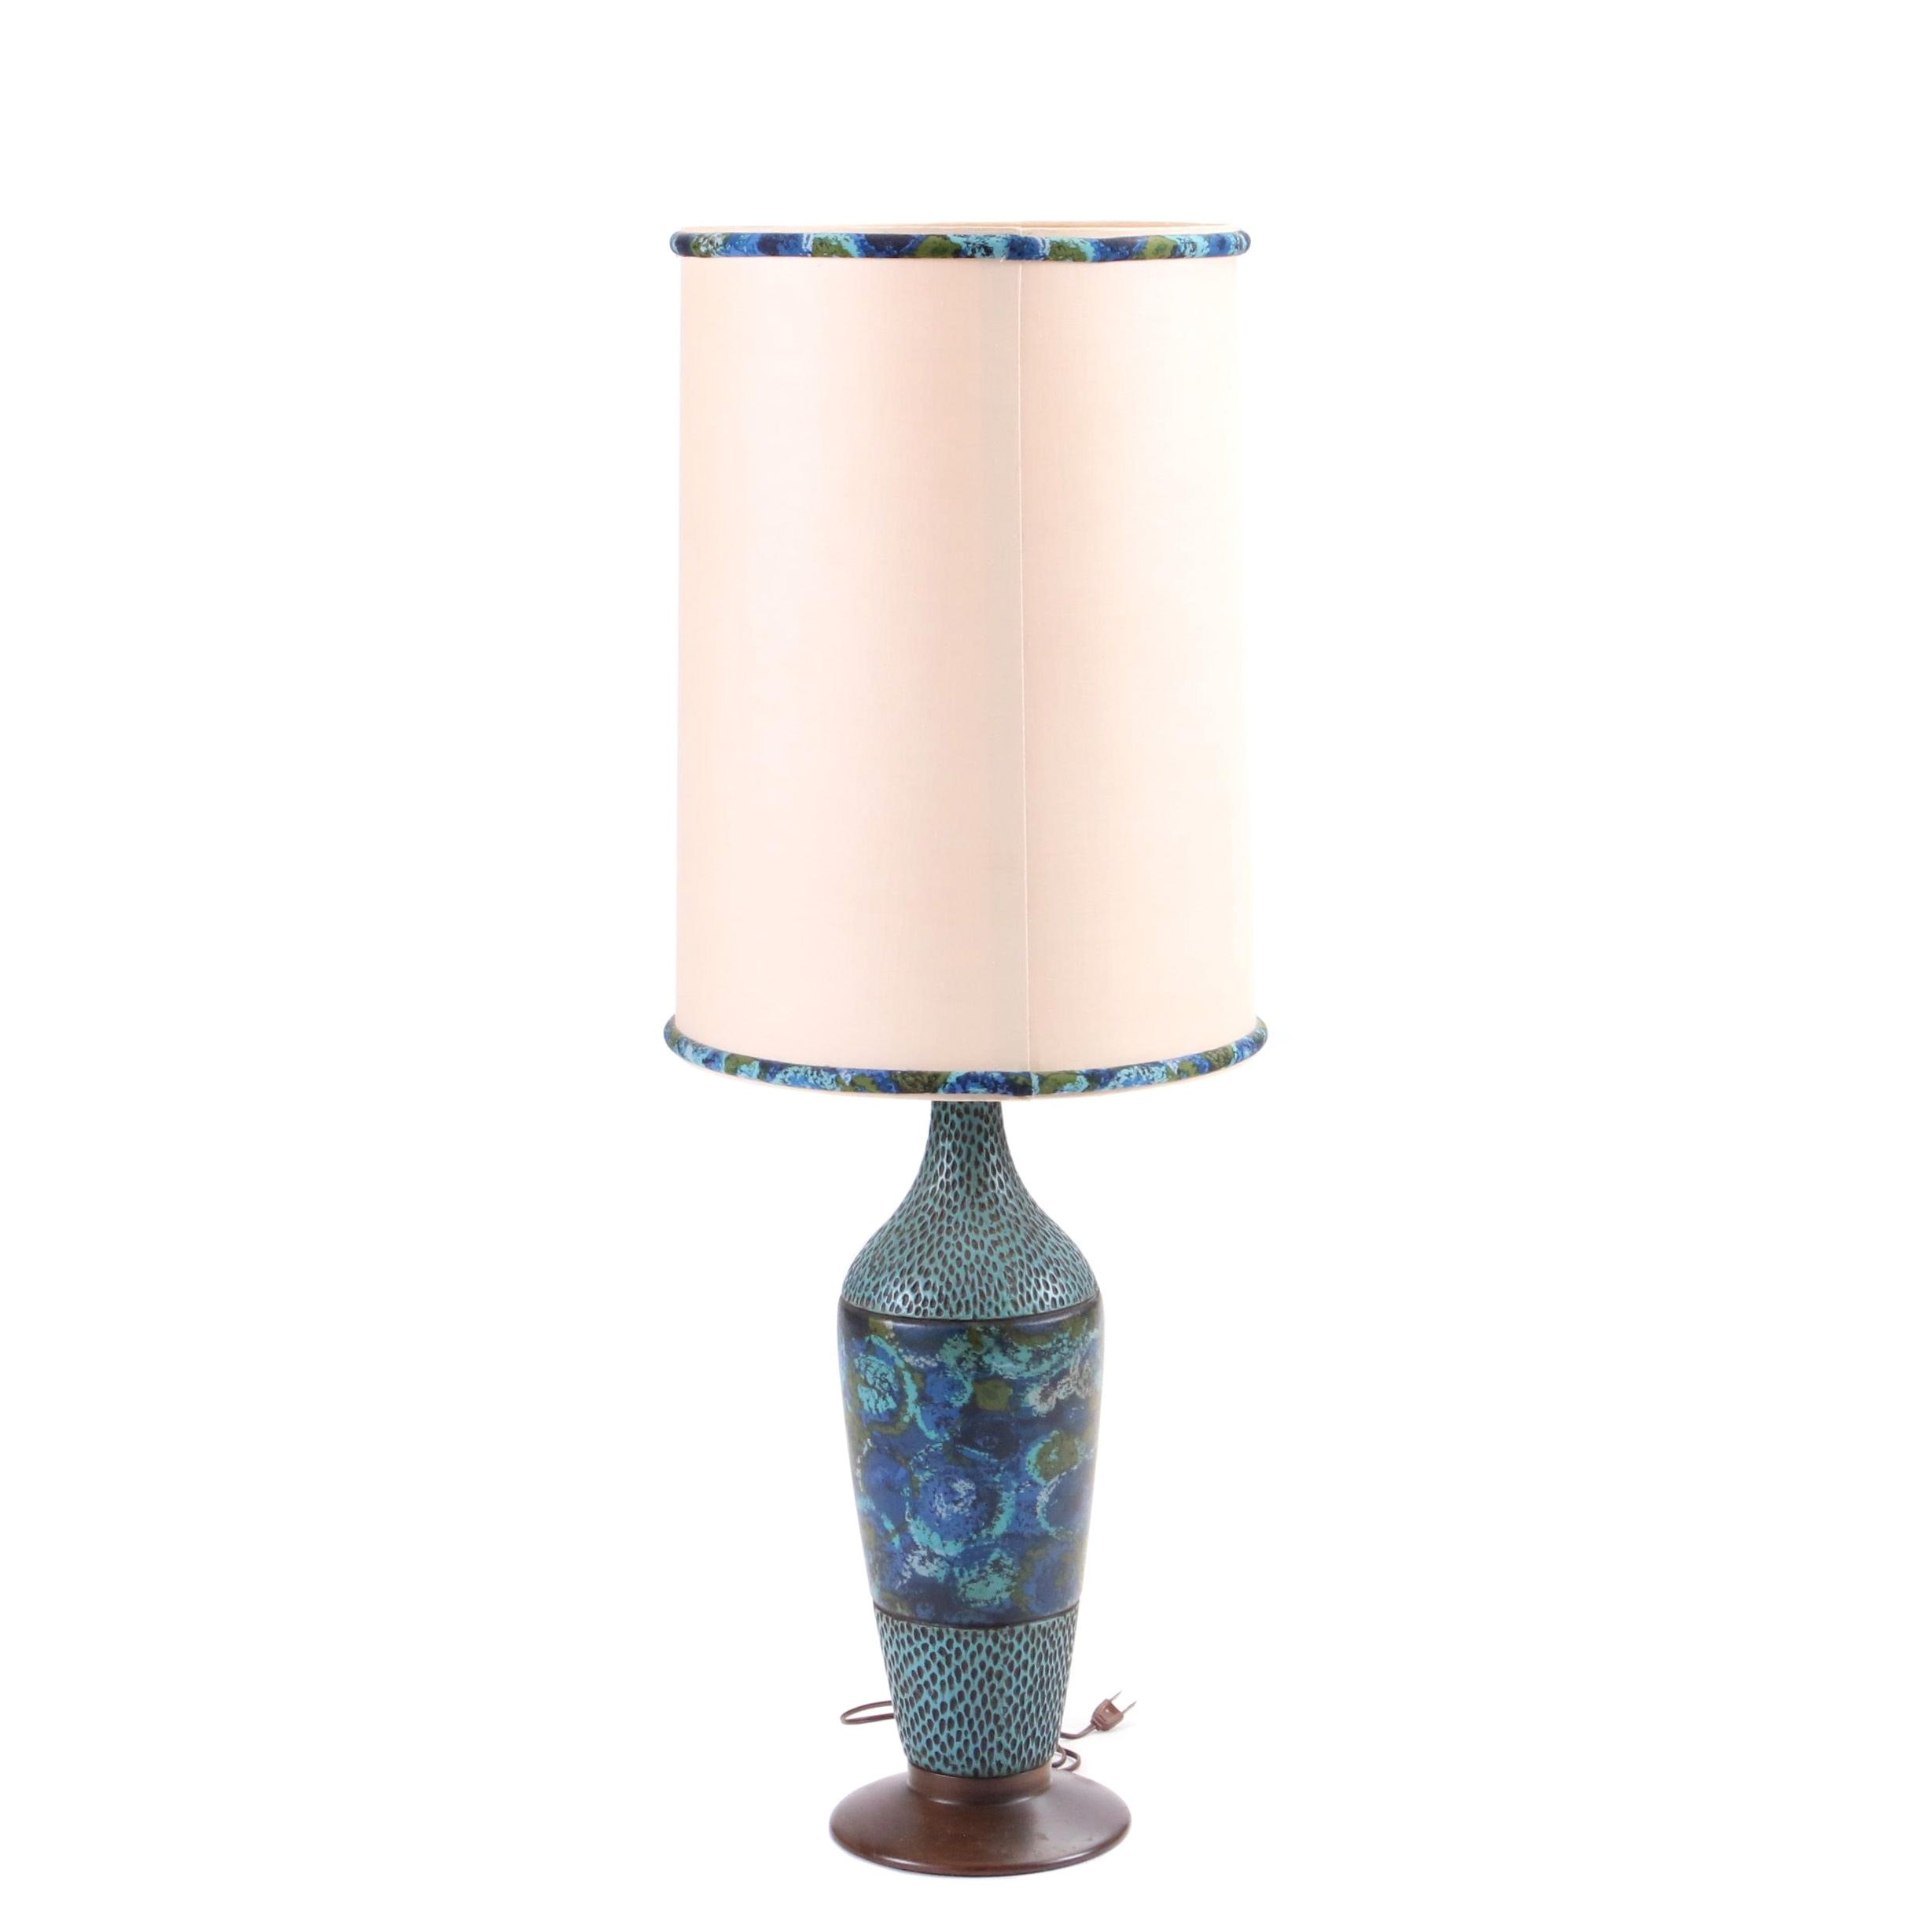 Mid Century Modern Table Lamp In the Style of Aldo Londi